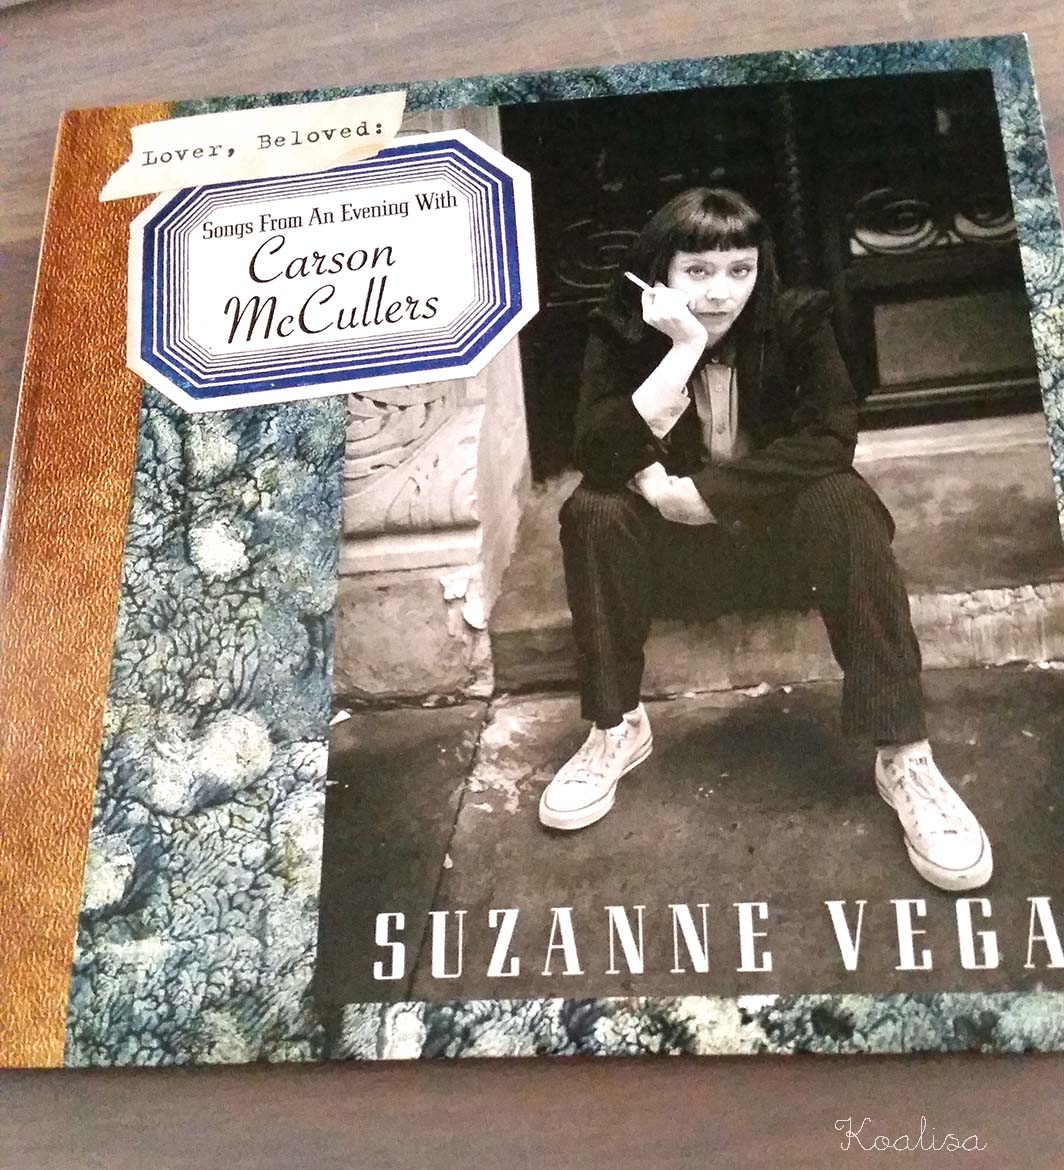 Le nouvel album de Suzanne Vega : Lover, Beloved: Songs from an evening with Carson McCullers